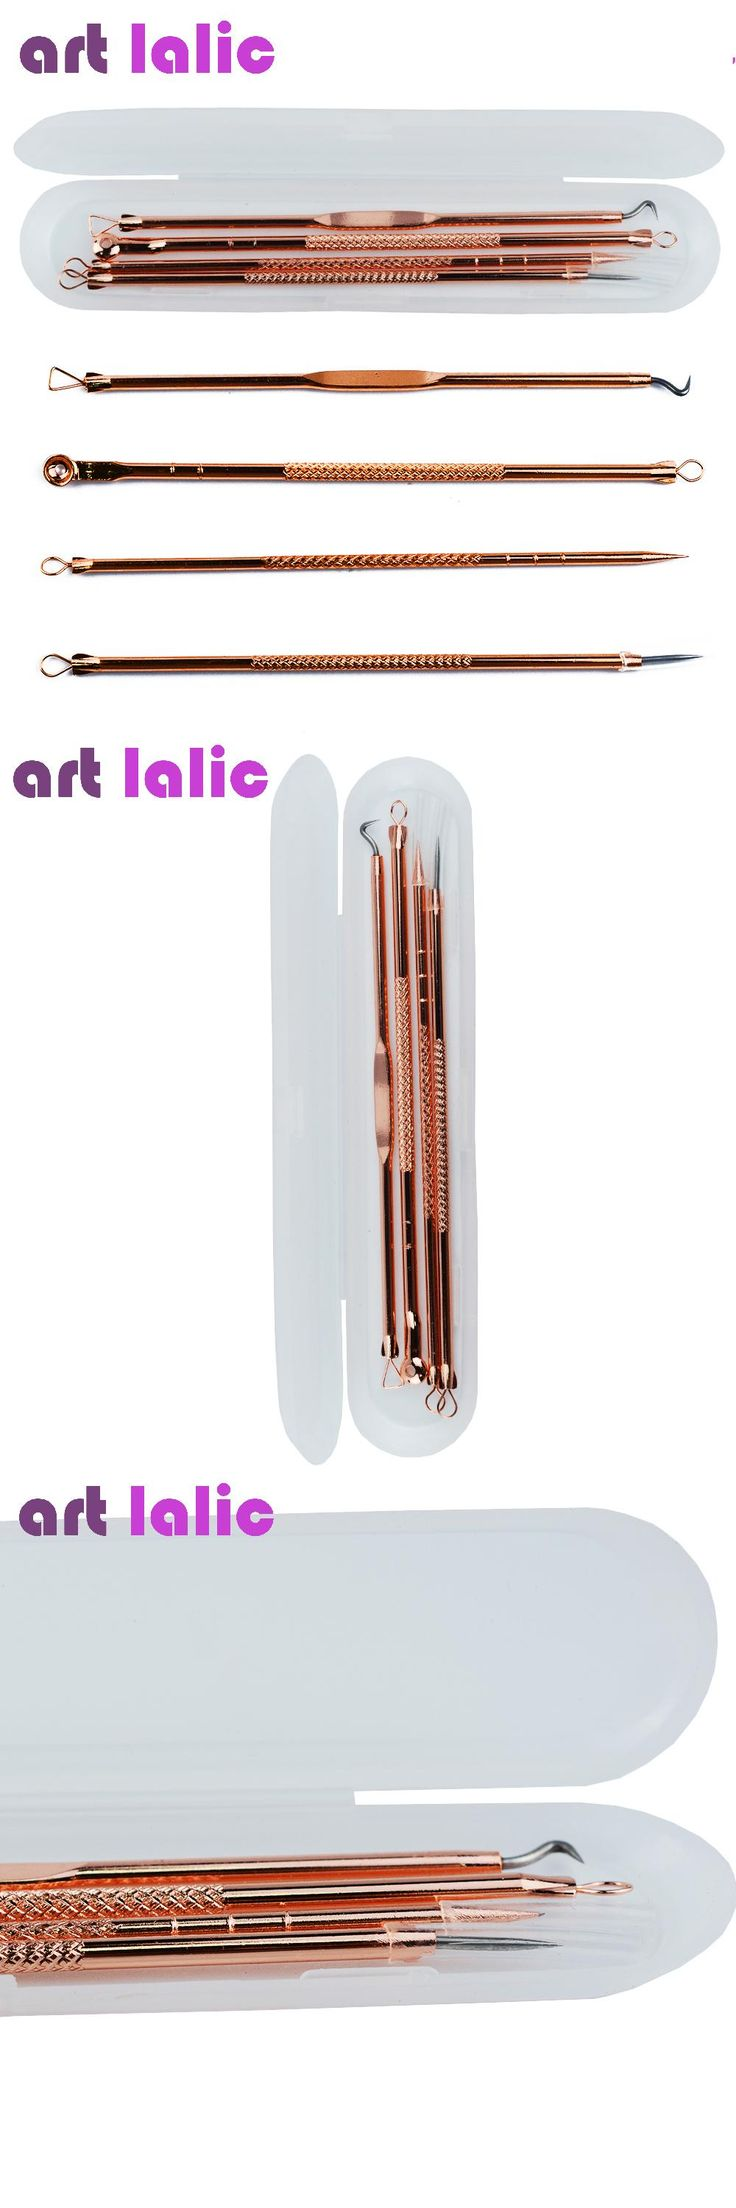 [Visit to Buy] 4Pcs/Set Skin Care Blackhead Come Done Acne Blemish Pimple Extractor Remover Needles Cosmetic Face Cleaning Tool Rose Gold Color #Advertisement